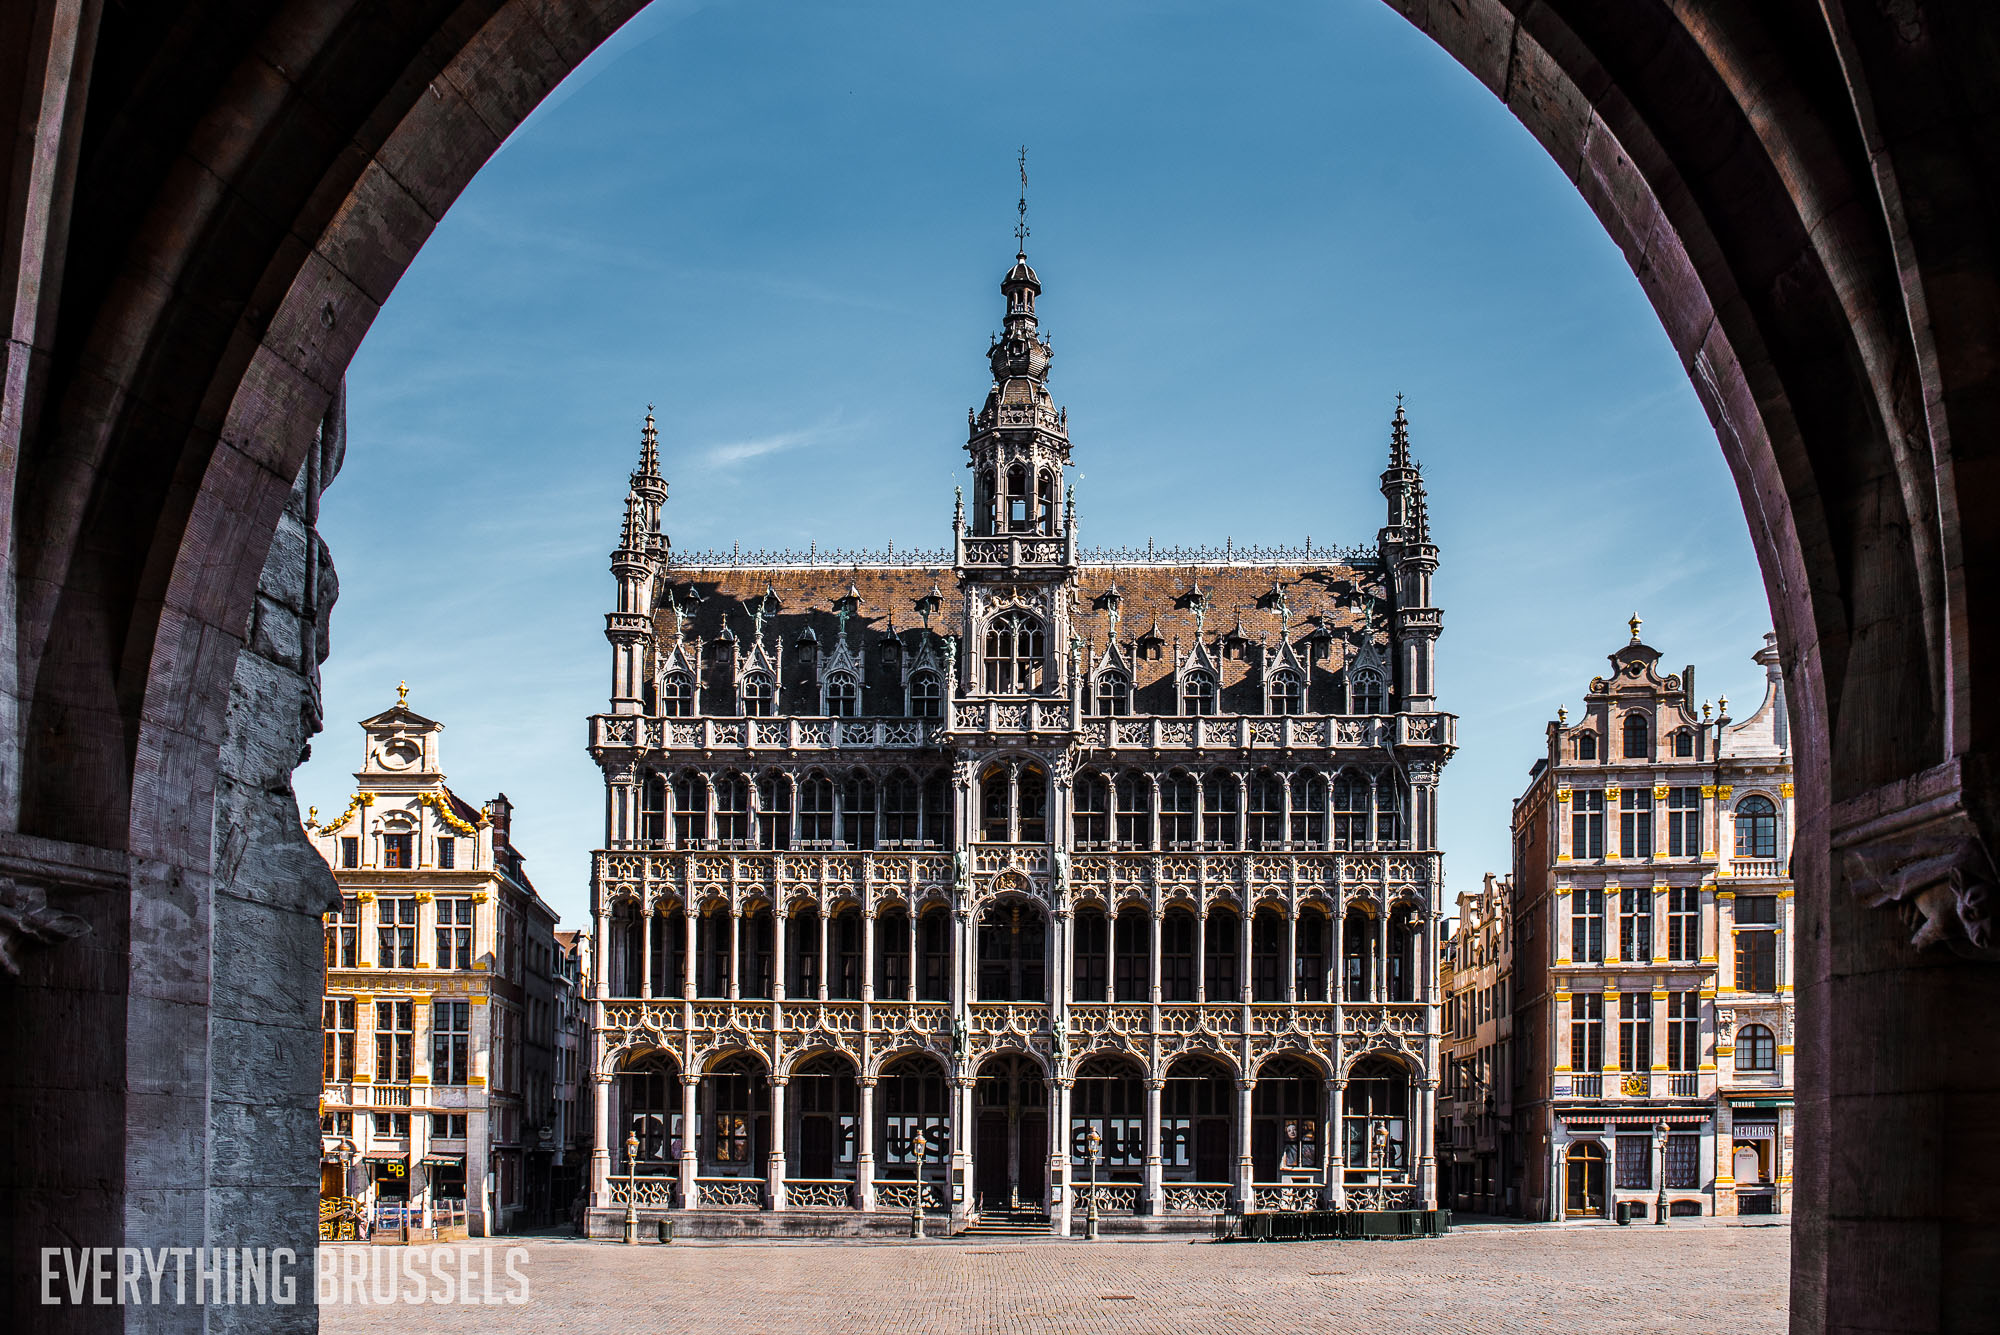 Museum of the City of Brussels, Grand Place during the lockdown